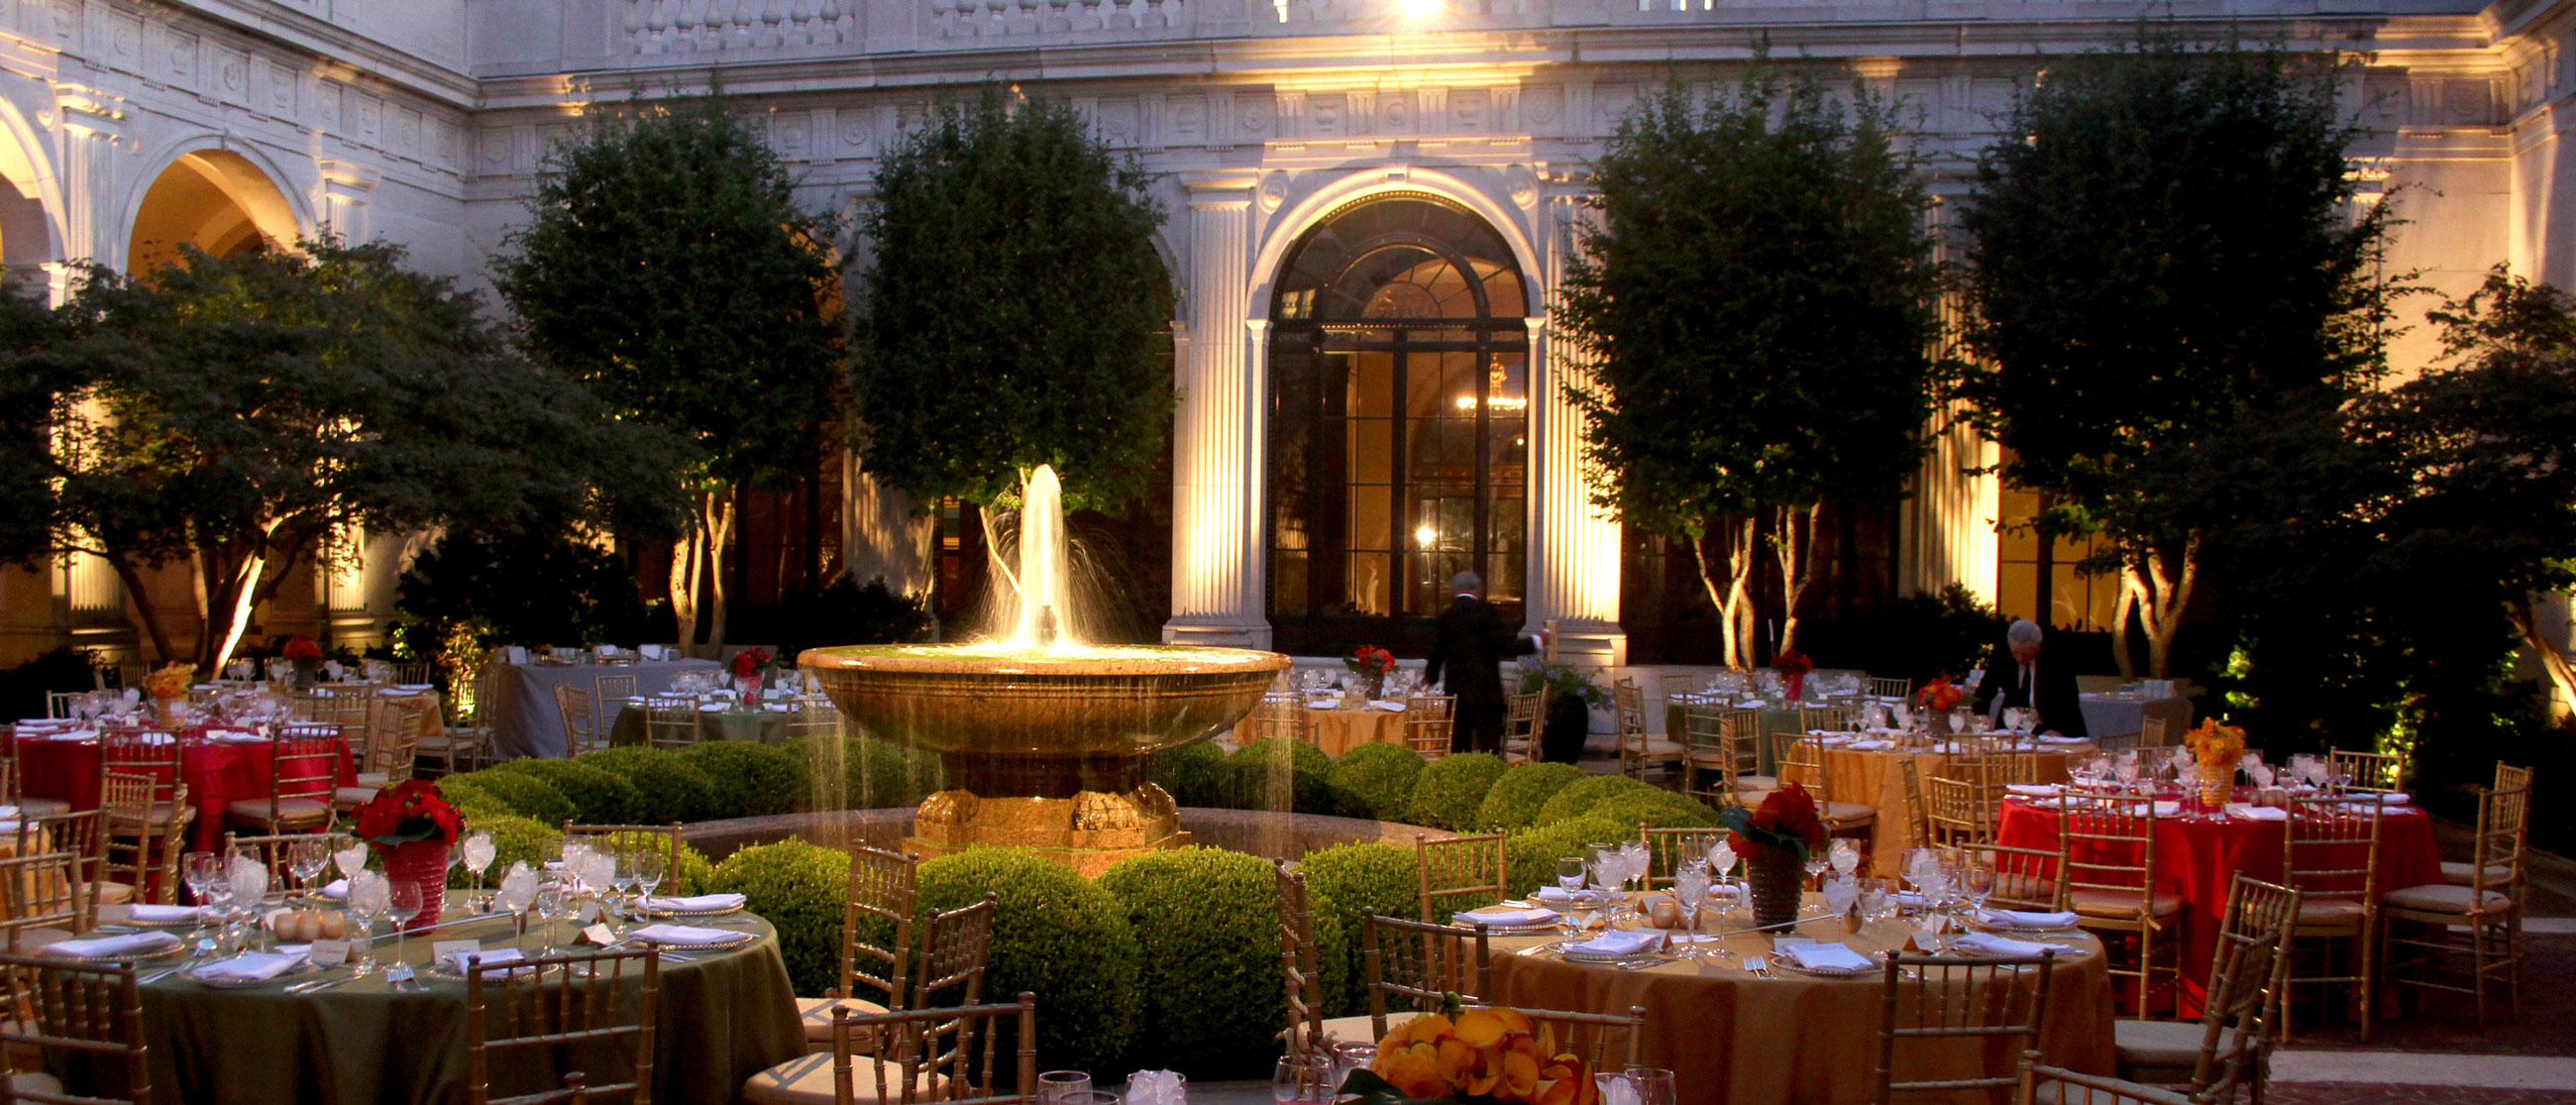 The Freer Courtyard, set for a gala